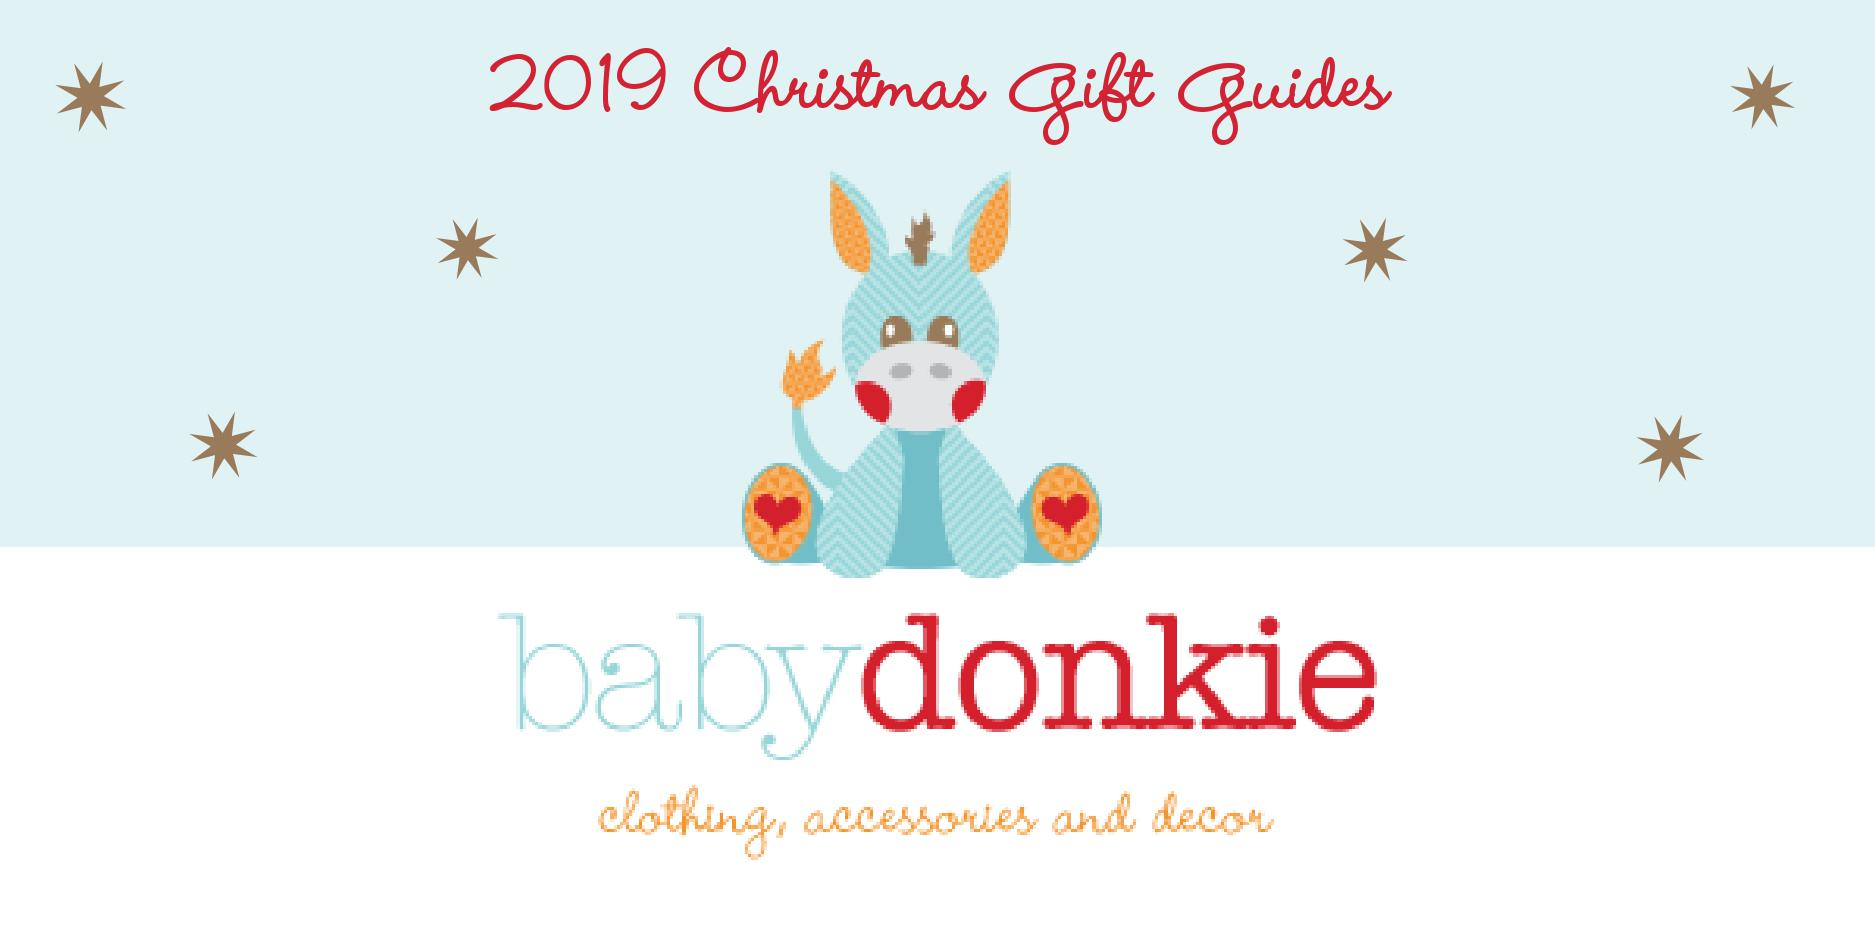 2019 Kids Christmas Gift Guides